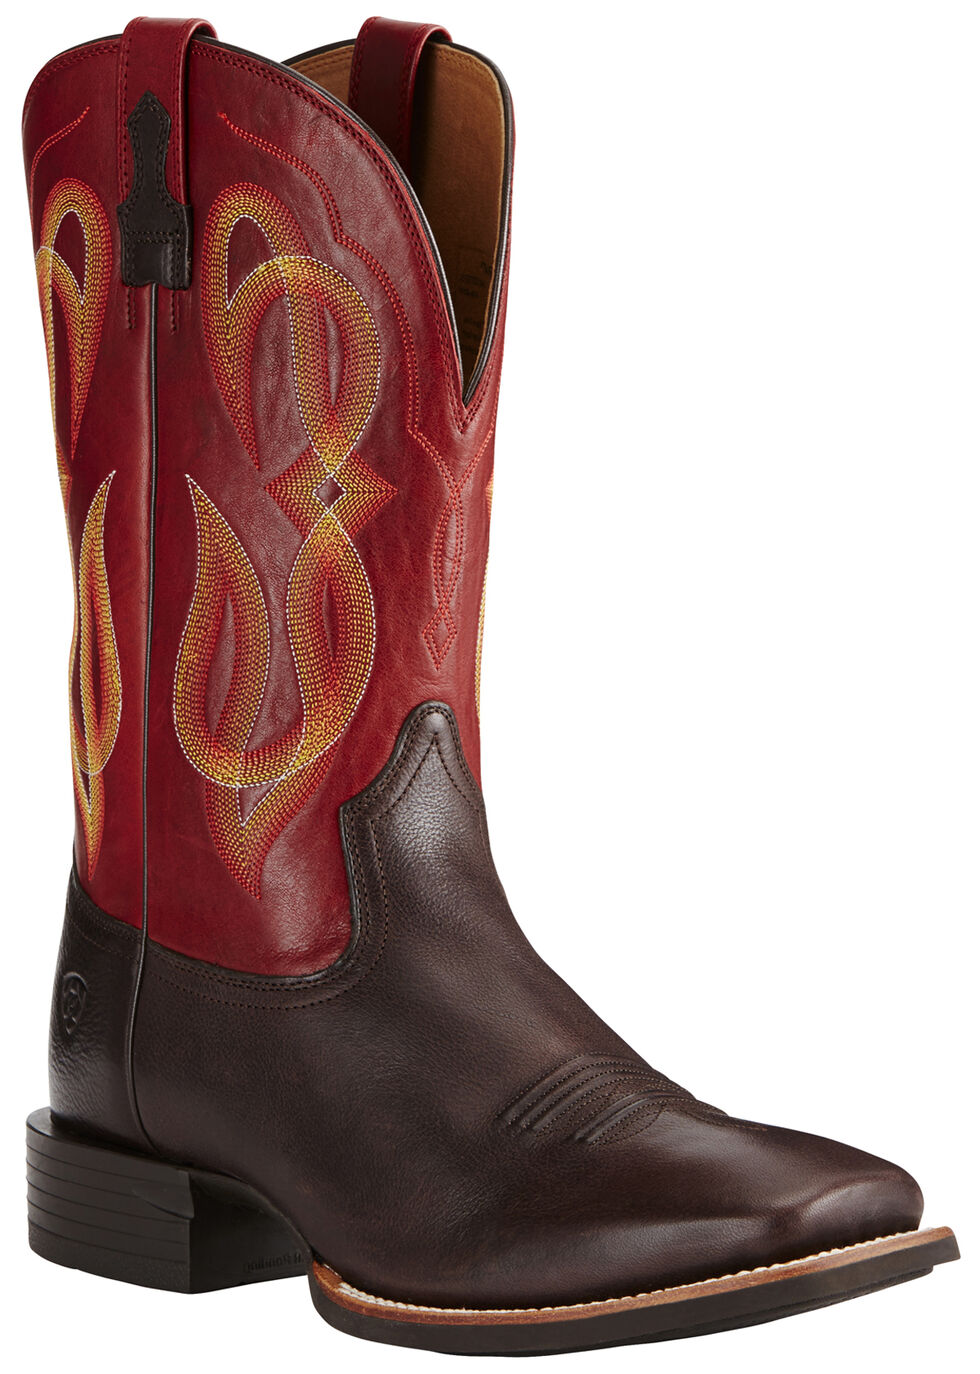 Ariat Men's Brown Quantum Brander Boots - Wide Square Toe, , hi-res